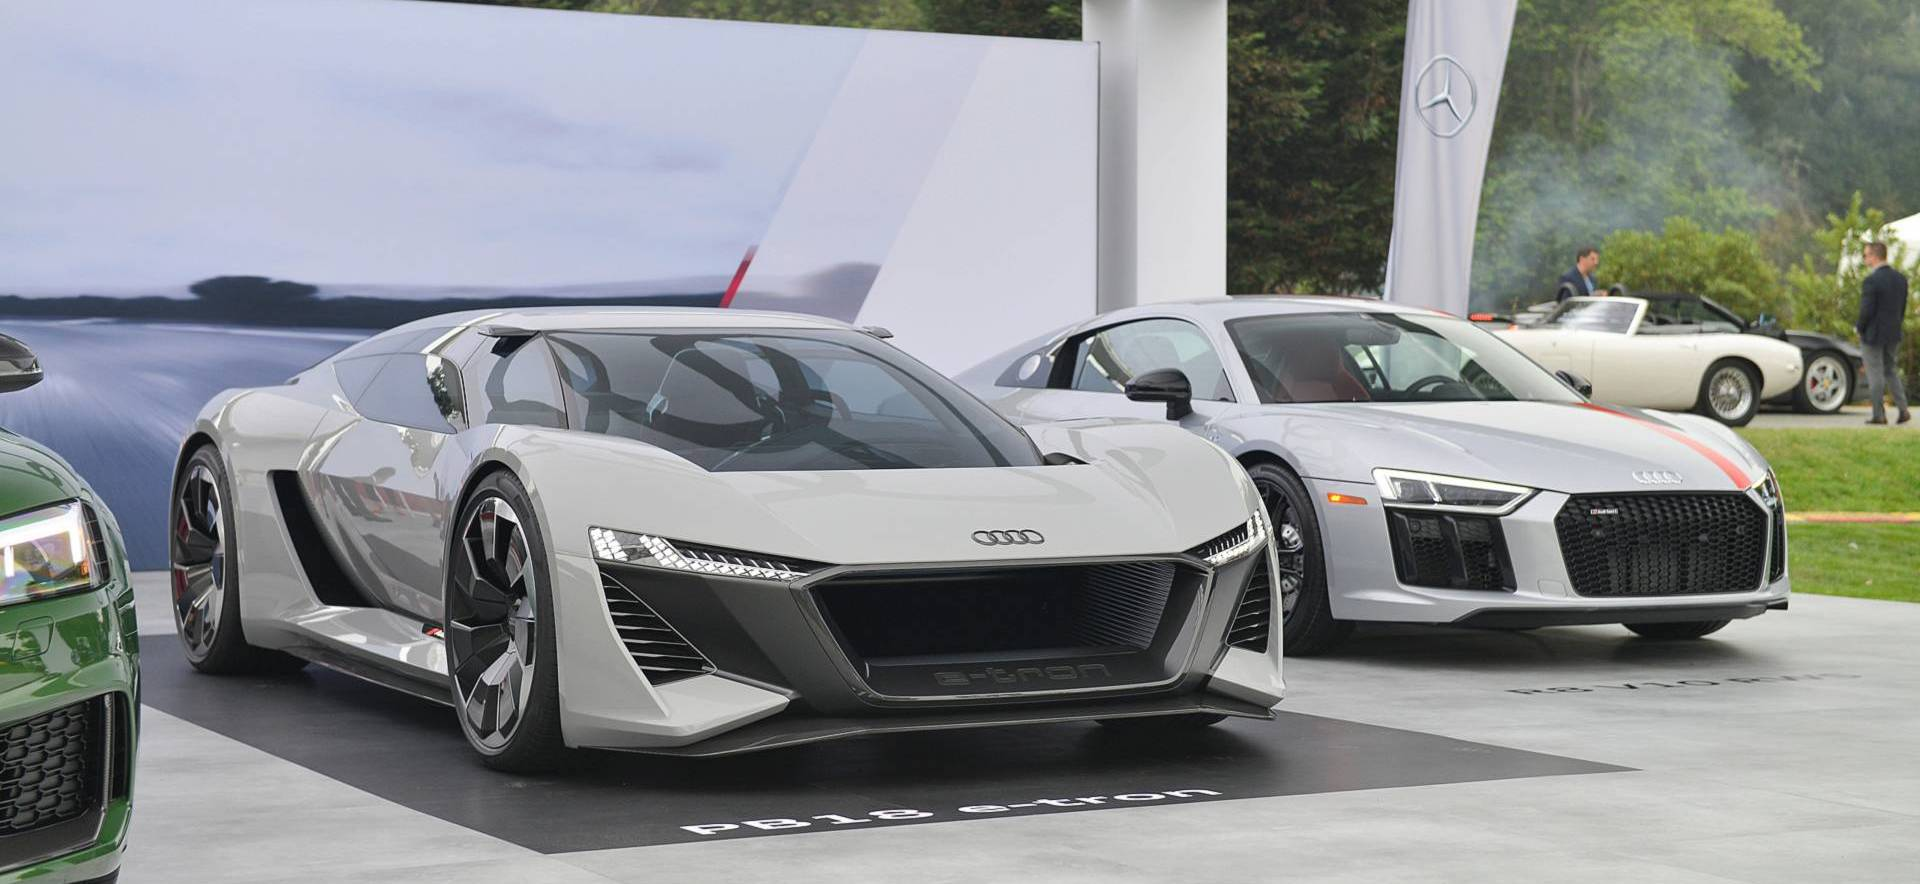 Next-Generation Audi R8 Could Be Only Electric And Pack 1,000 HP